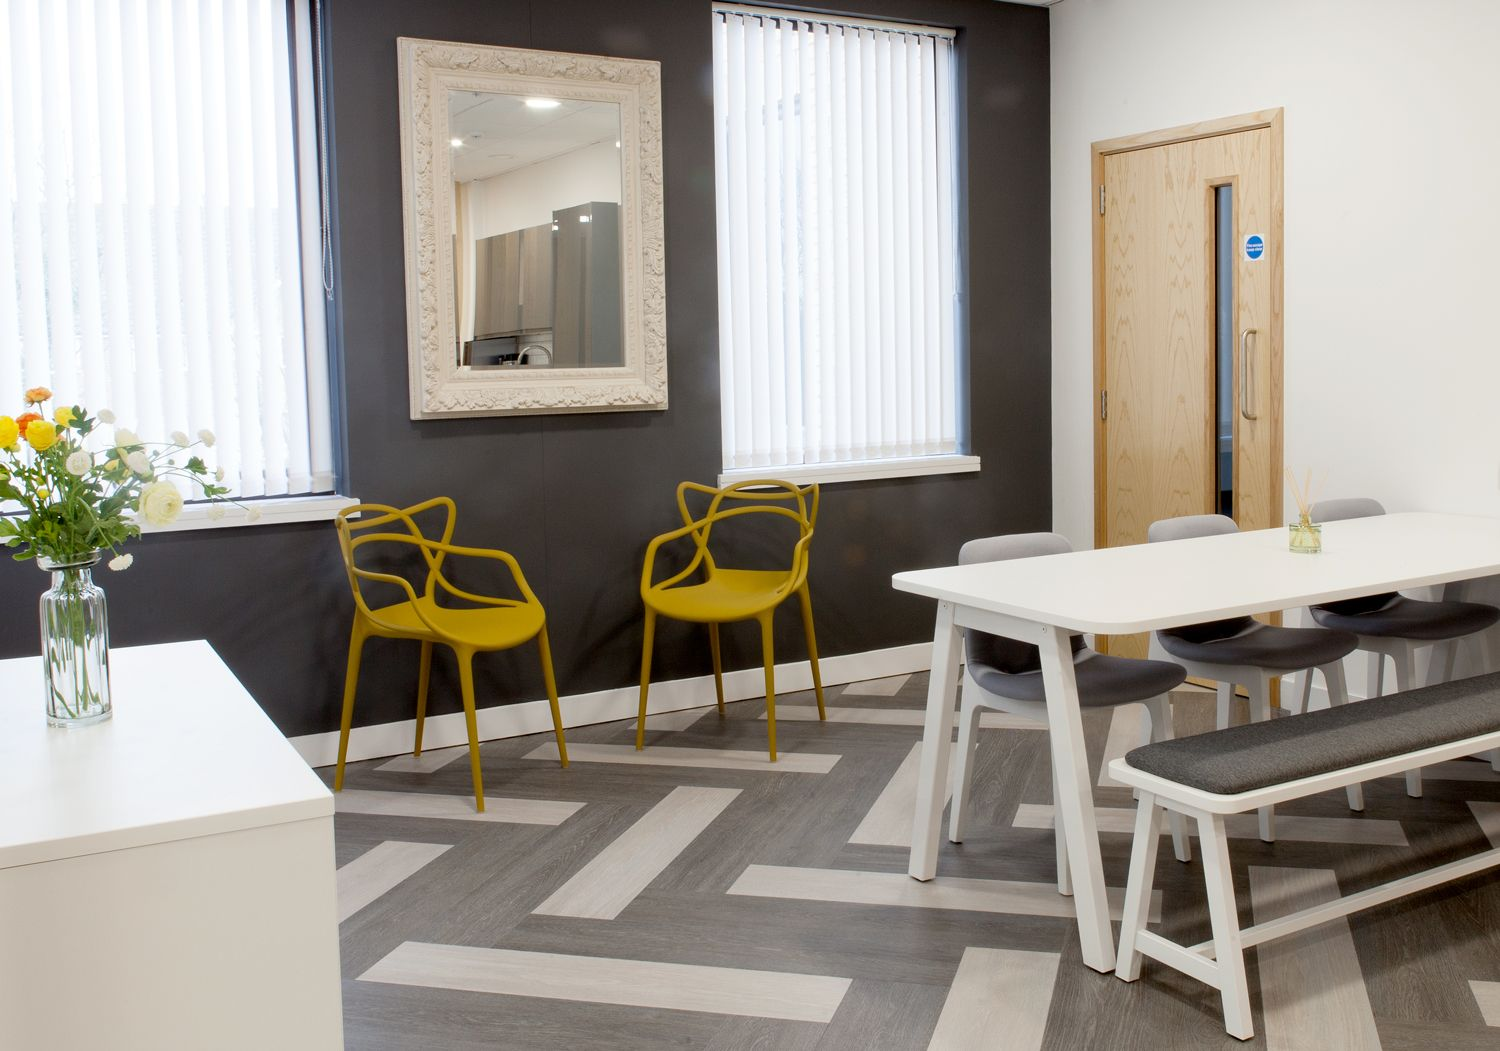 Starting your office design